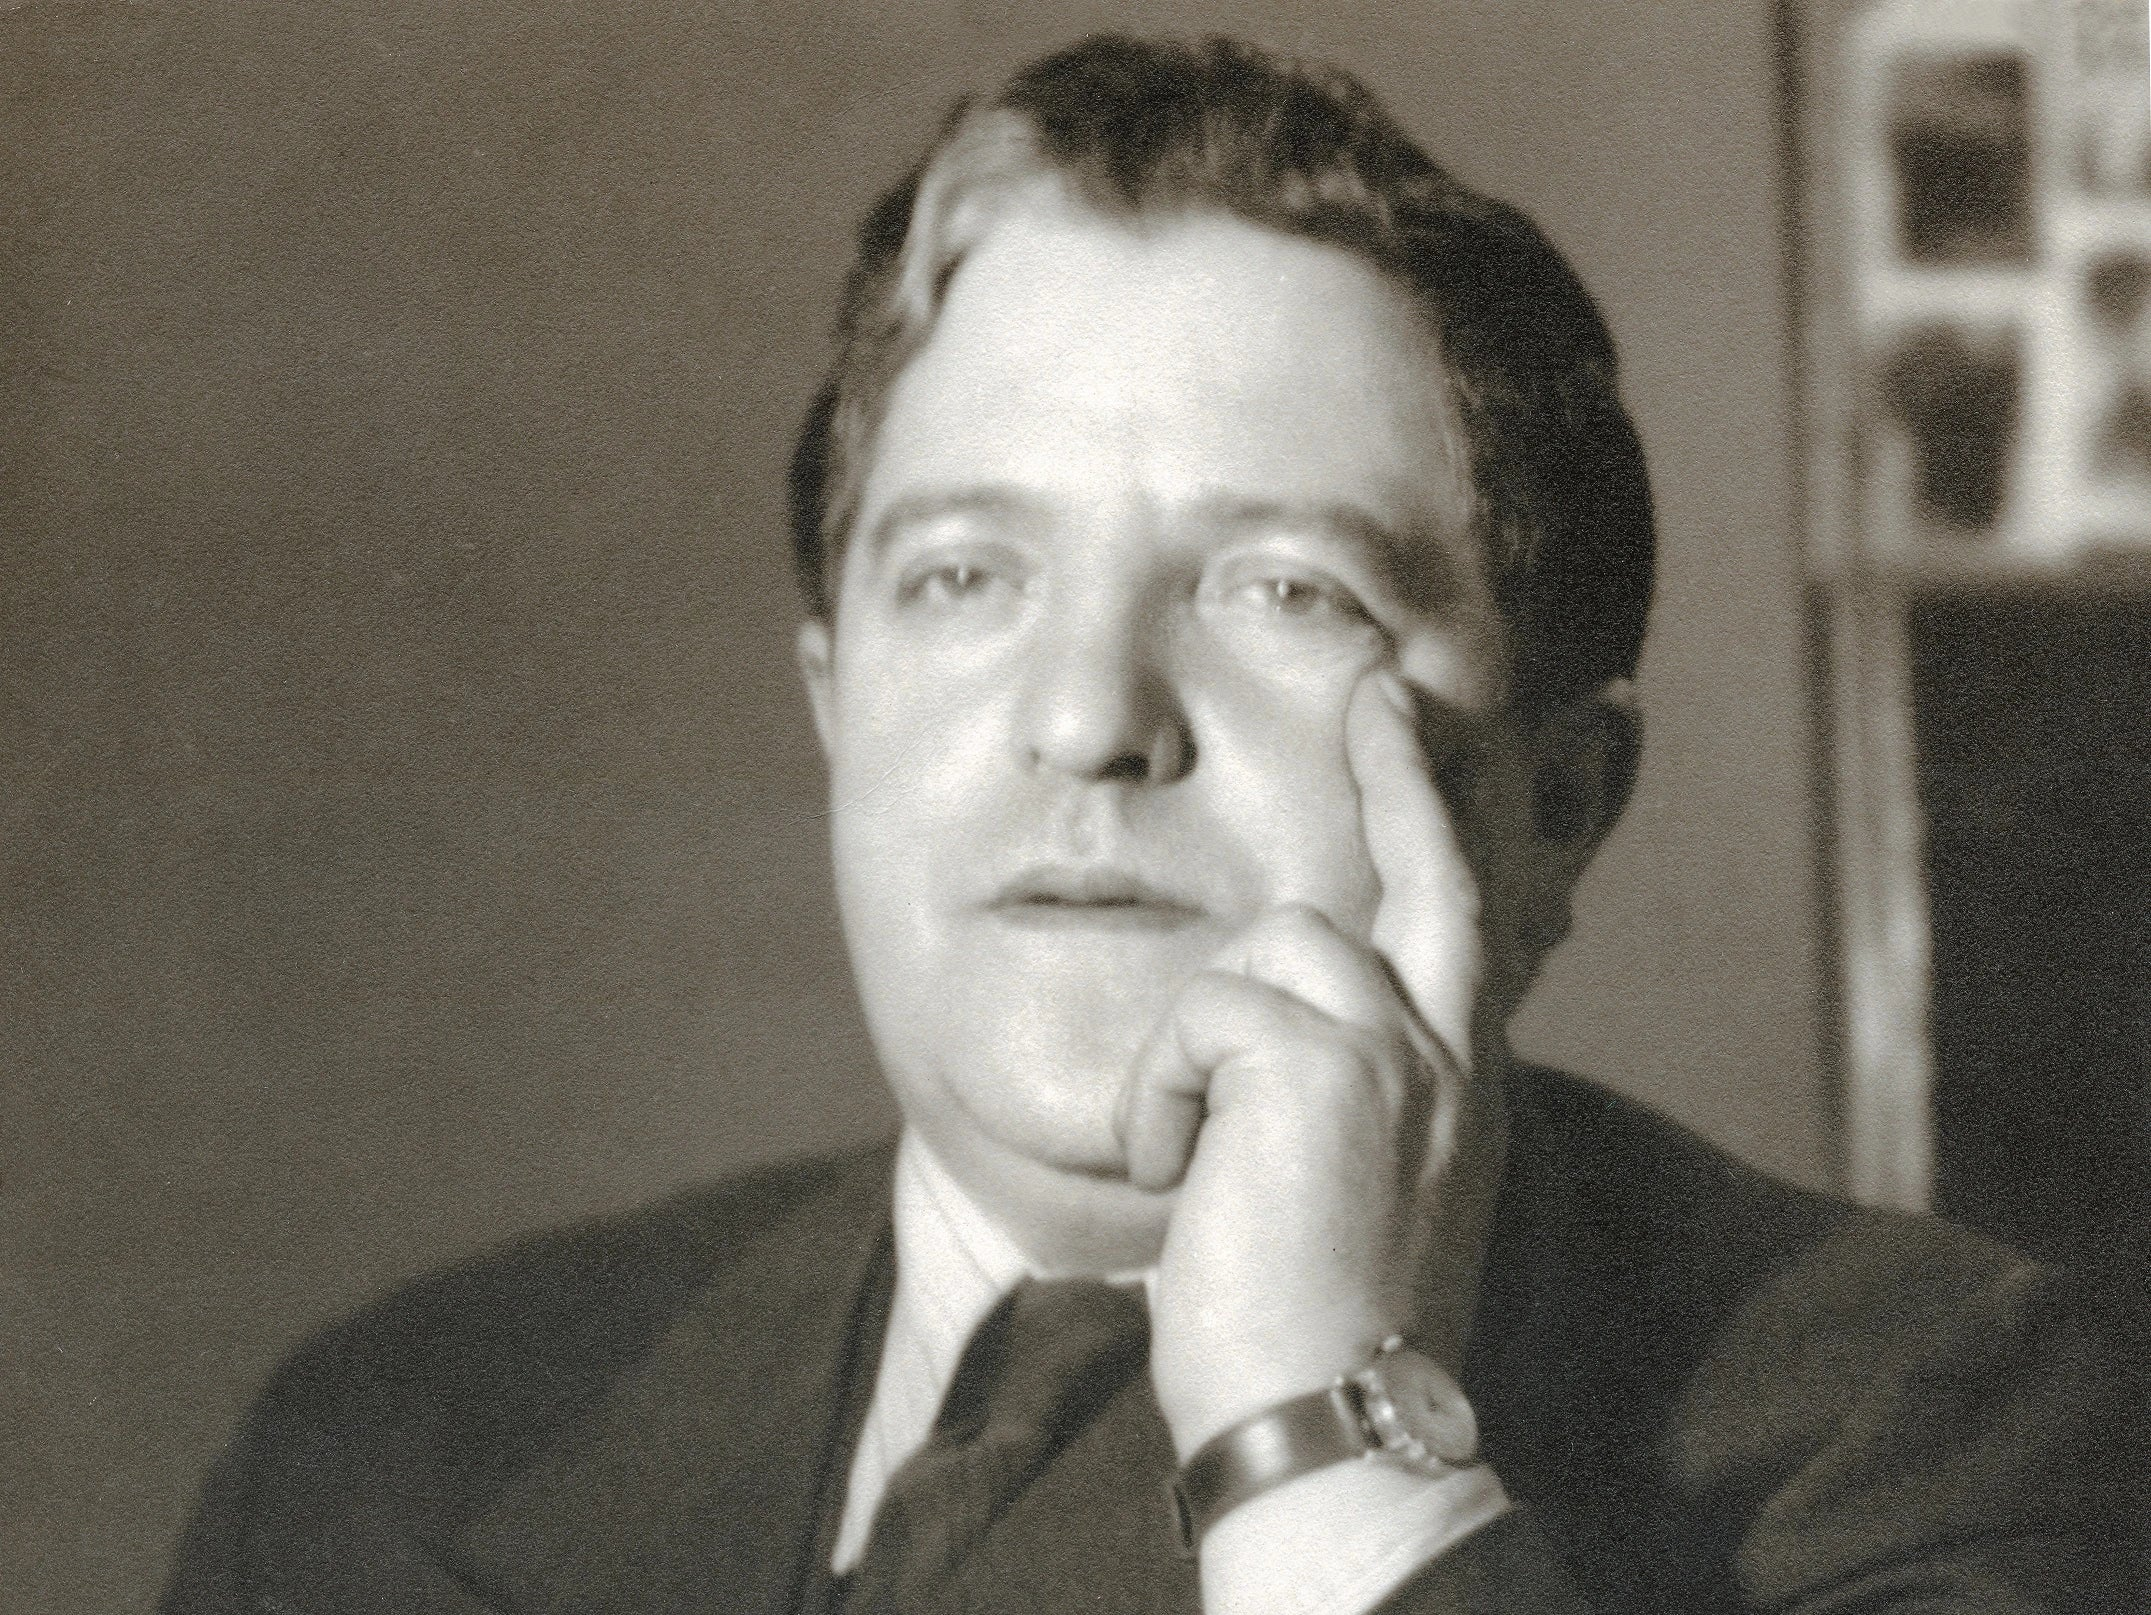 black and white photo of Morris Wein with his left hand on his cheek